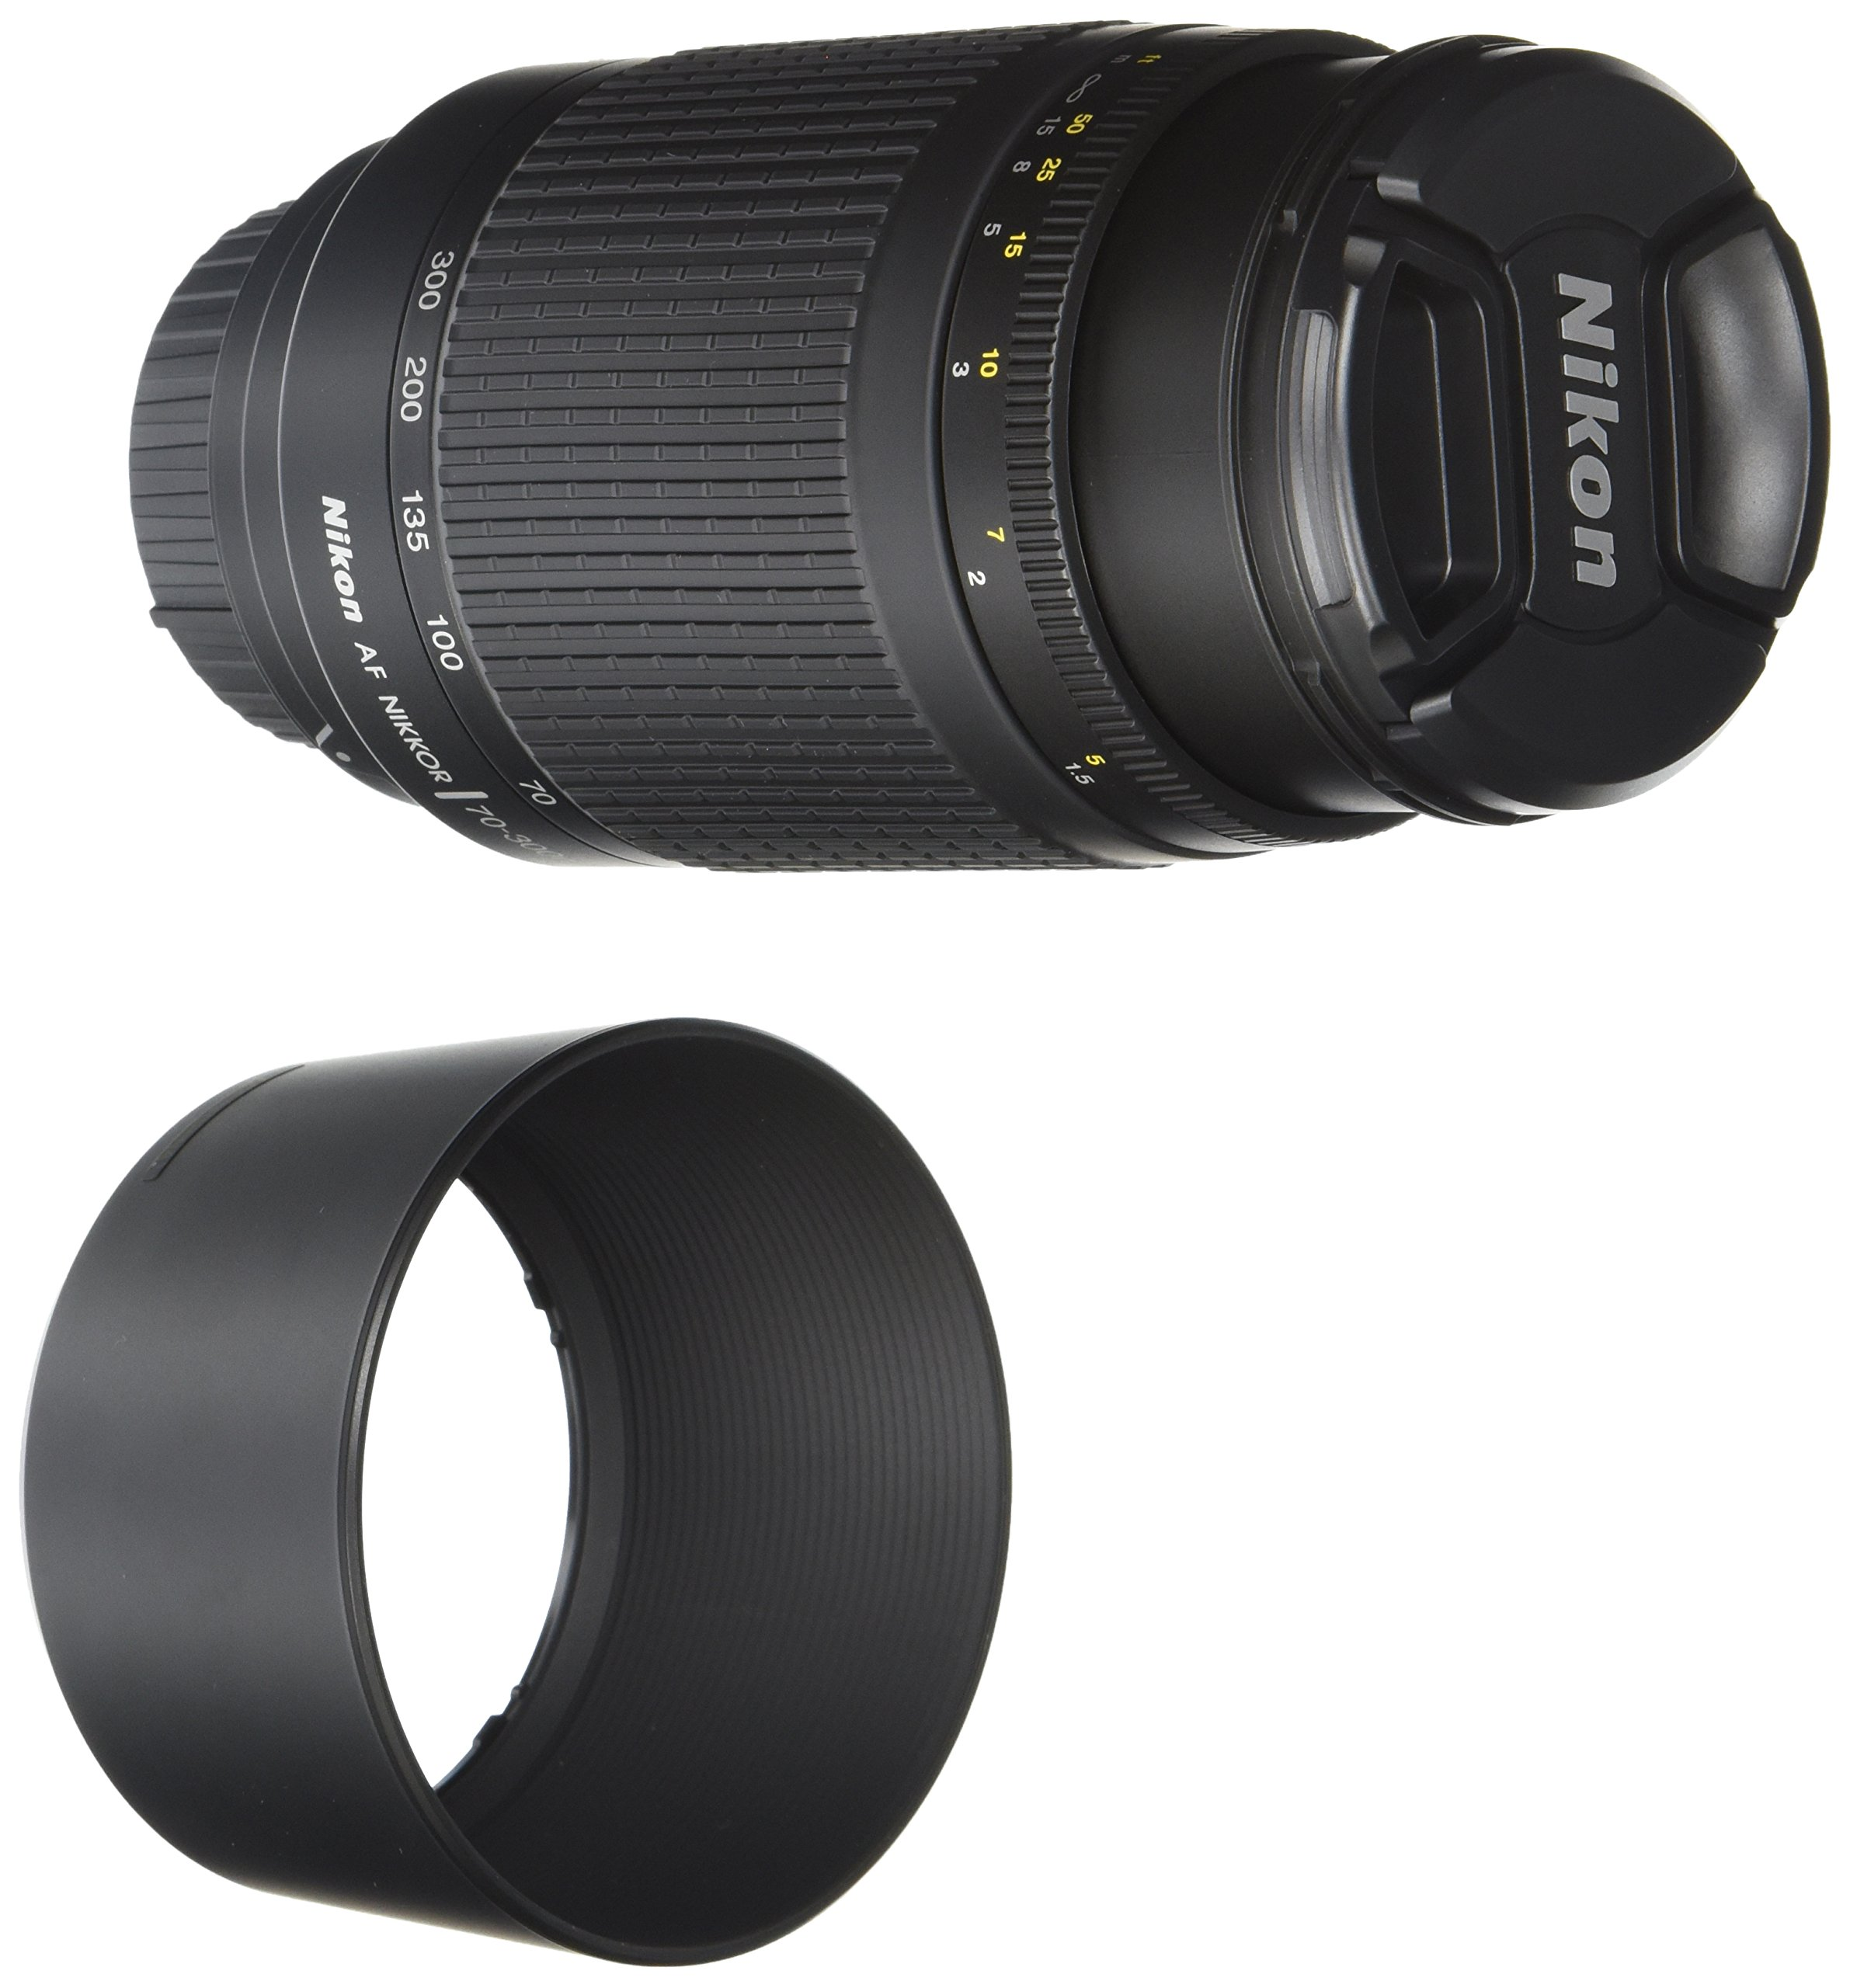 Nikon 70-300 mm f/4-5.6G Zoom Lens with Auto Focus for Nikon DSLR Cameras by Nikon